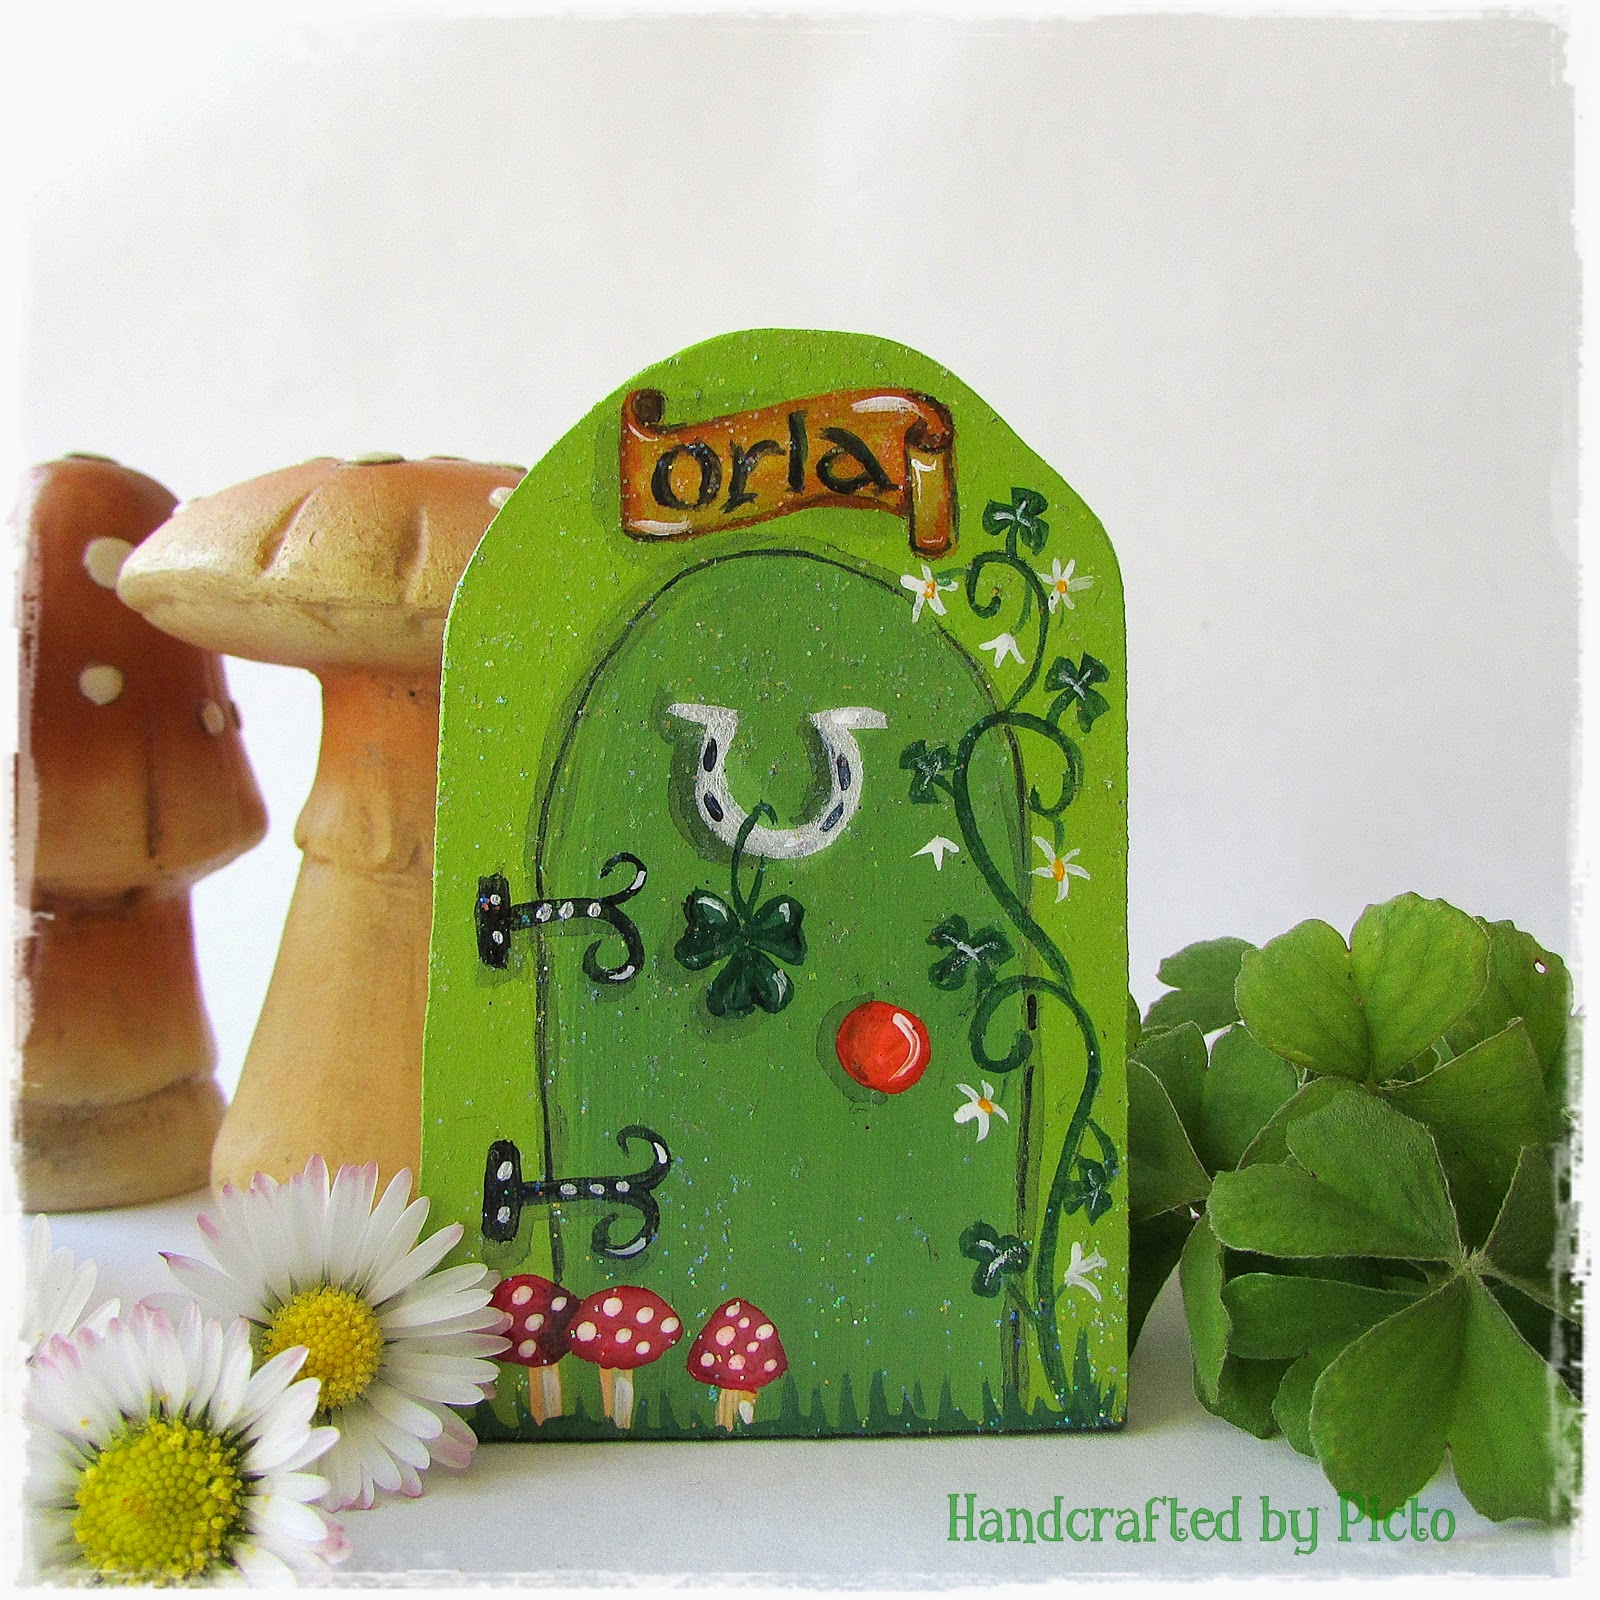 St Patricku0027s Leprechaun Door & Handcrafted by Picto: St Patricks Day Leprechauns and a Little ... pezcame.com